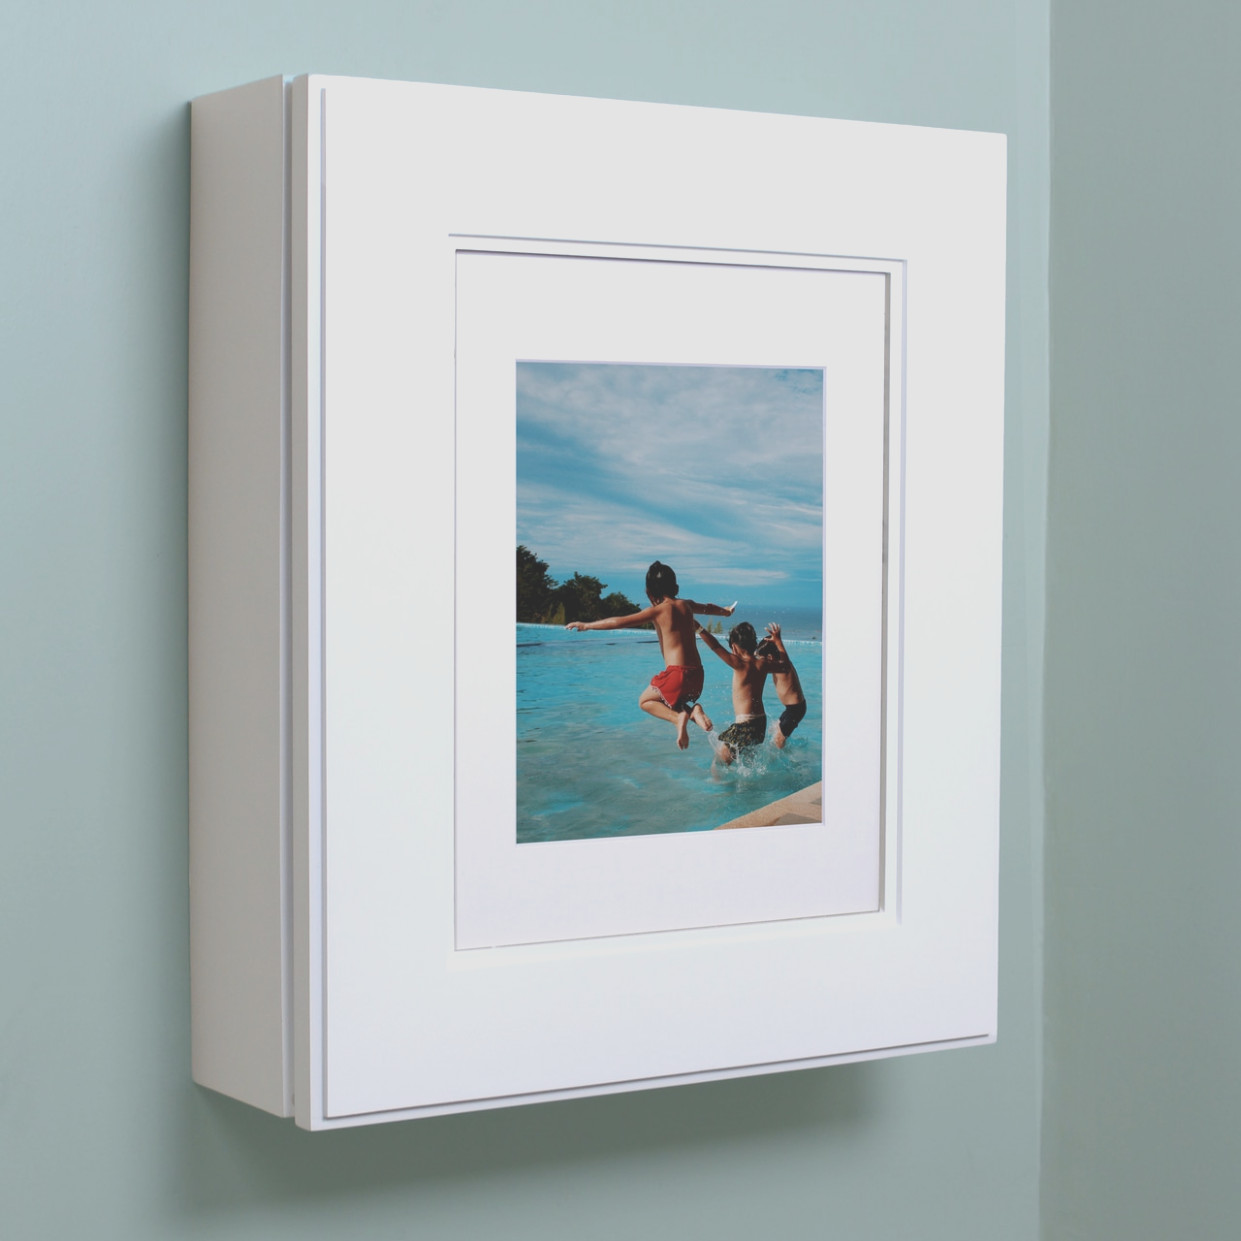 Wall Mount Picture Frame Medicine Cabinet